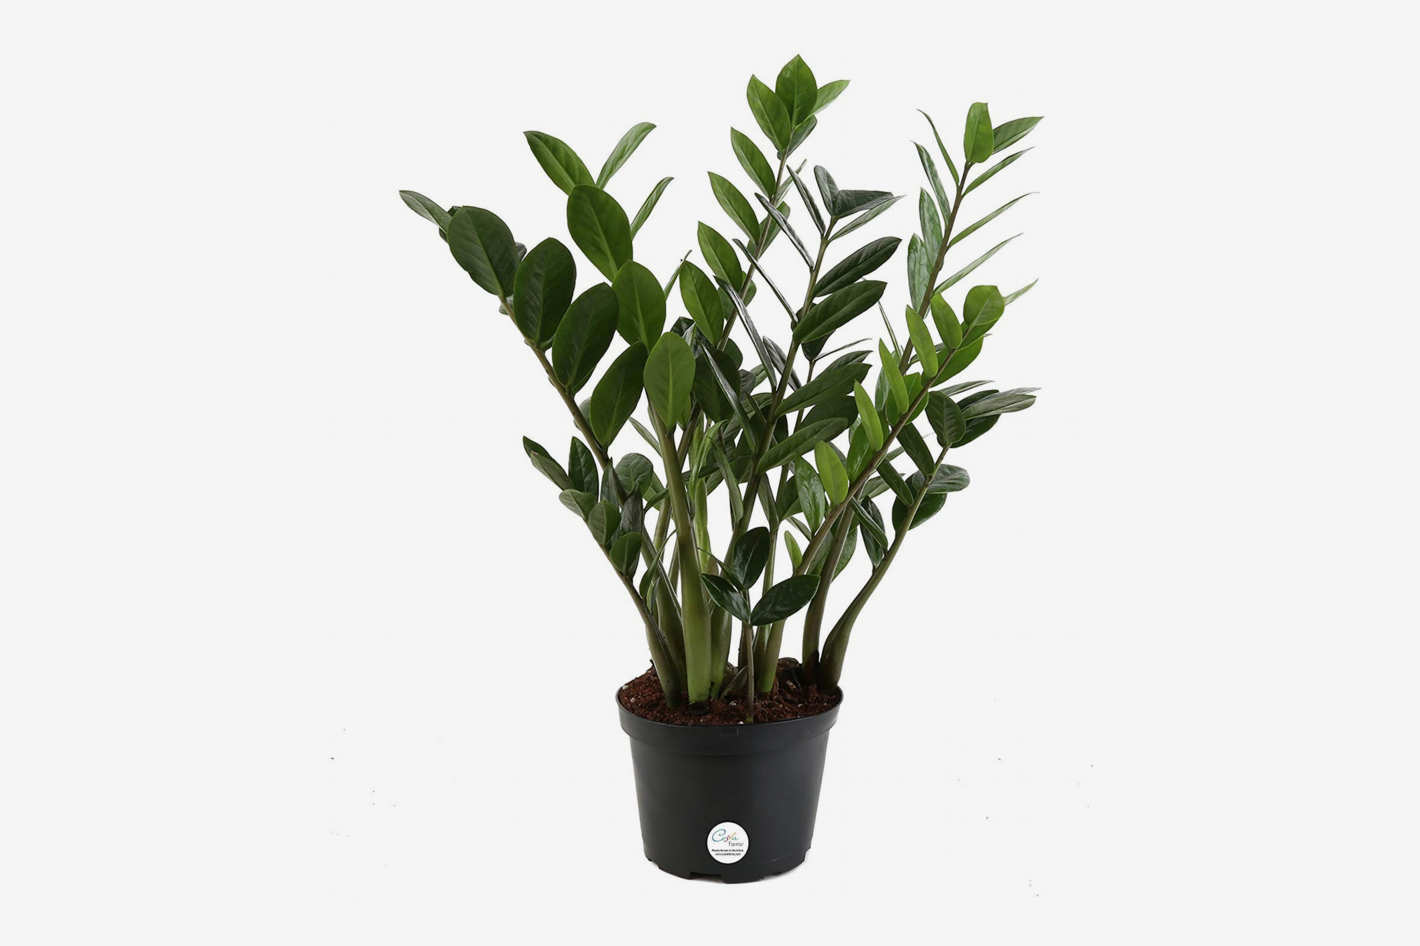 Indoor Plants For The Office Zz Plant Zamioculcas Zamiifolia